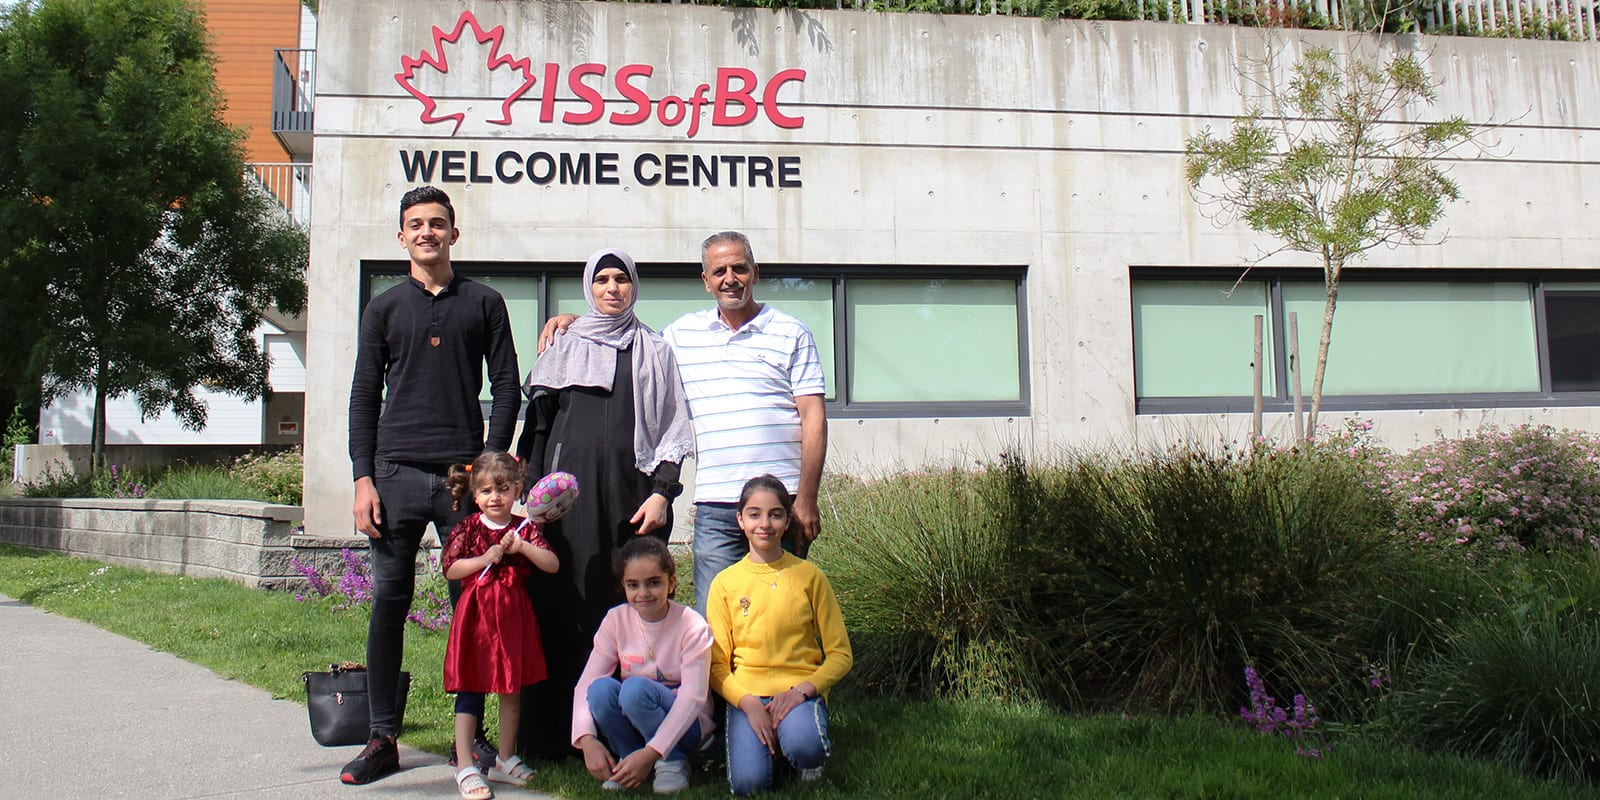 Refugee Family pose outside of ISSofBC Welcome Centre